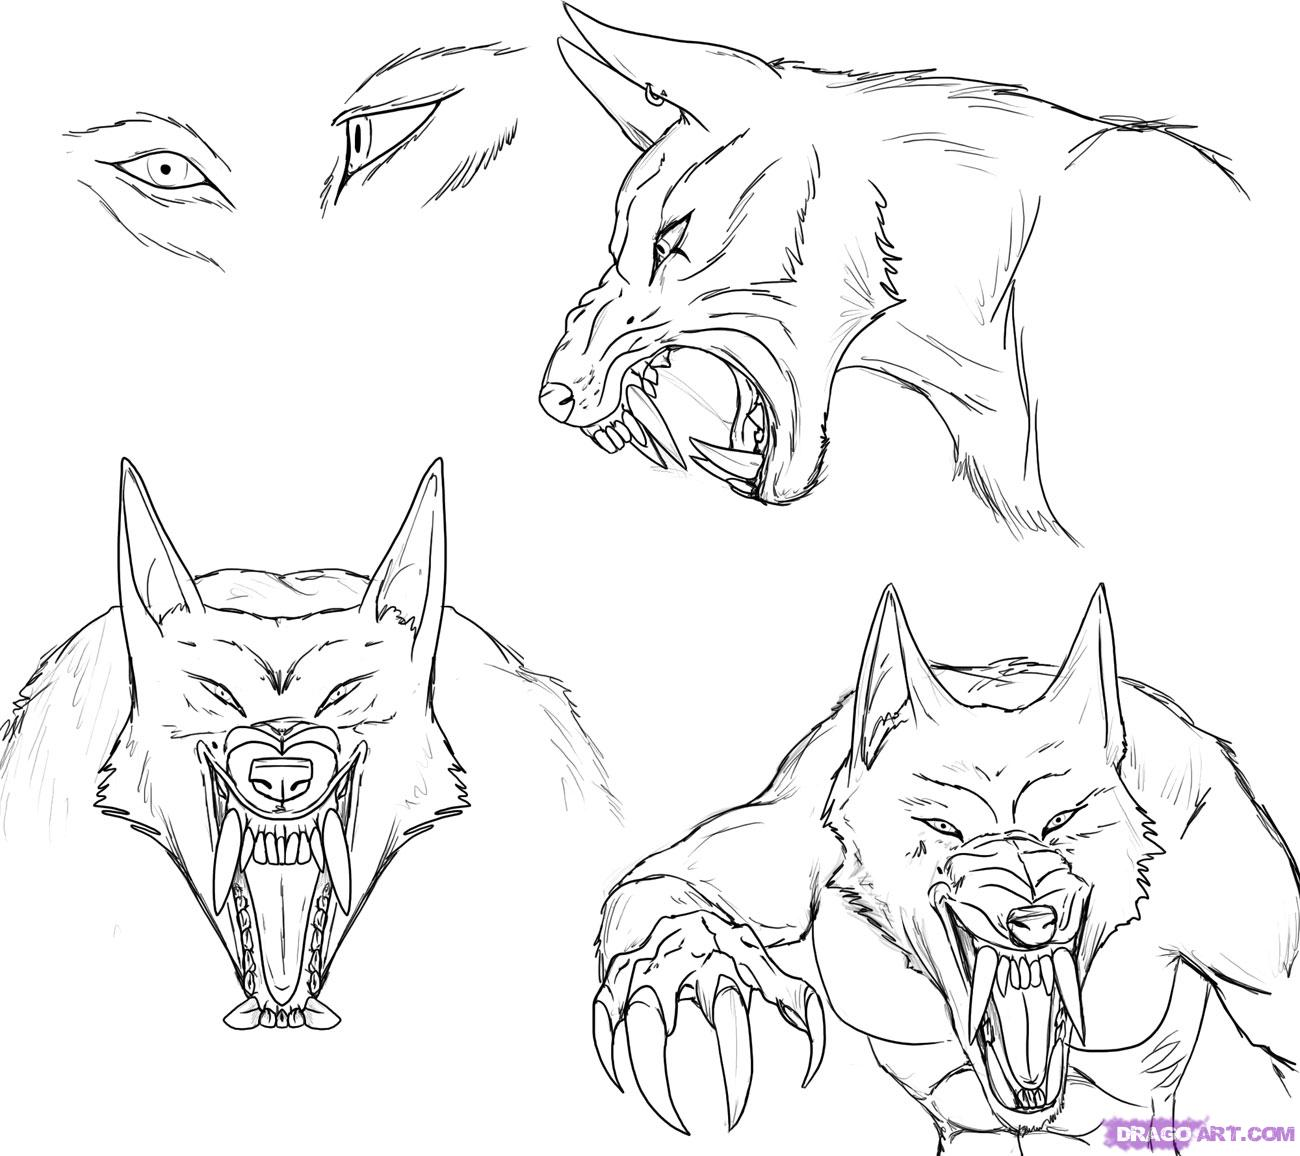 1300x1156 Drawing How Make A Wolf Face With Makeupgether With How